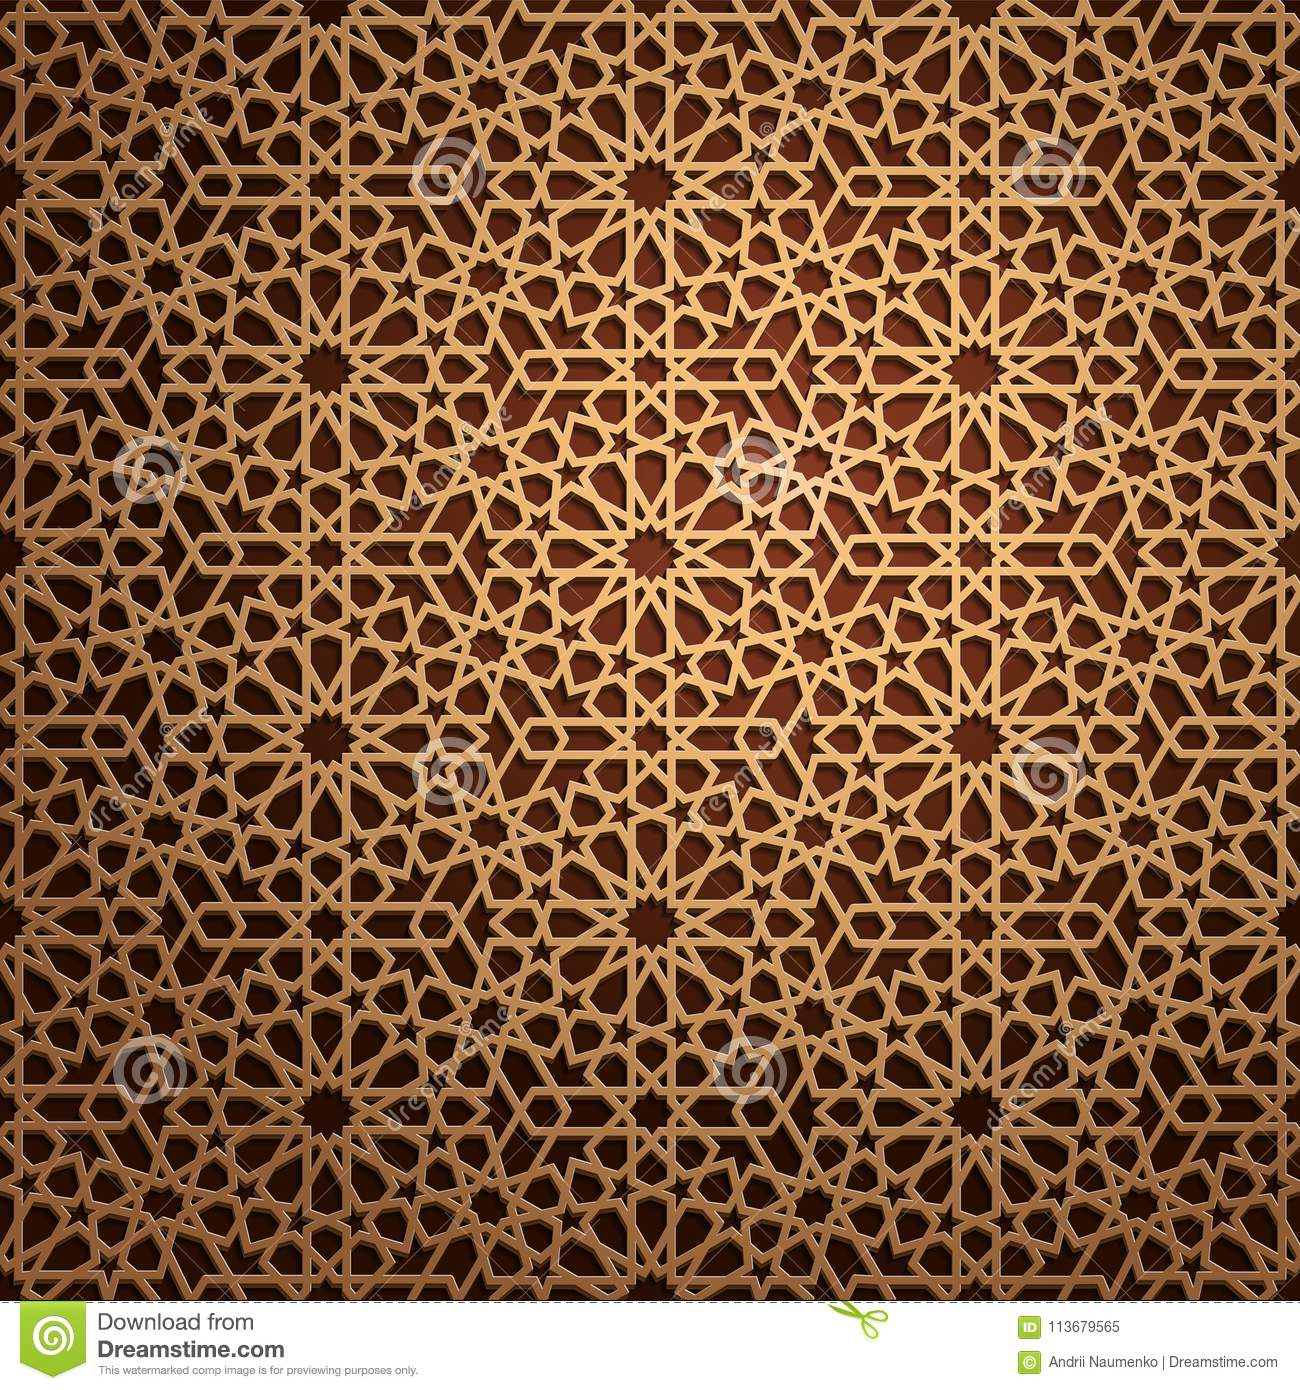 Set of islamic oriental patterns, Seamless arabic geometric ornament collection. Vector traditional muslim background